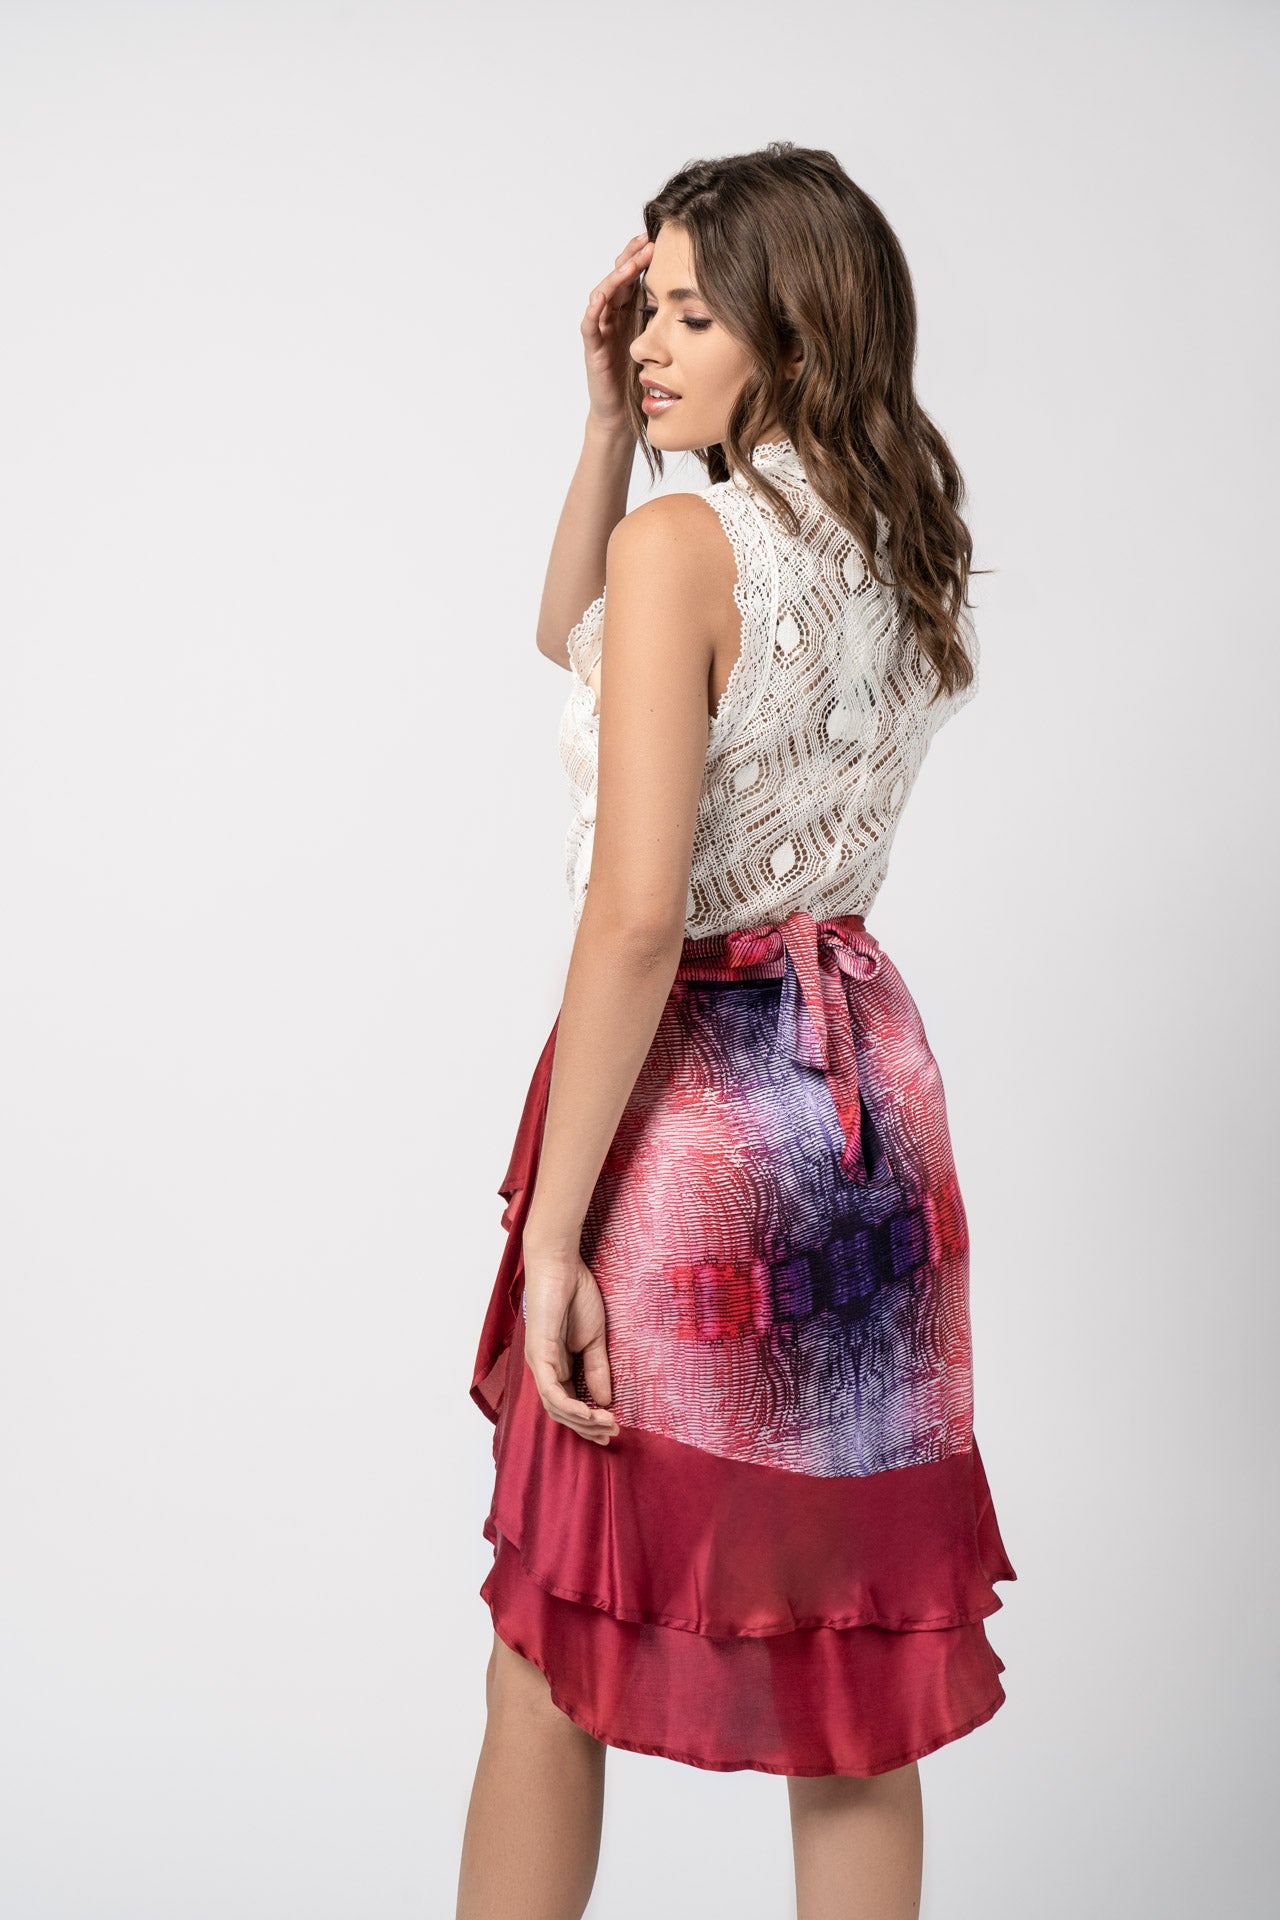 Mural Wrap Skirt - Red Plum Print Skirts - artTECA